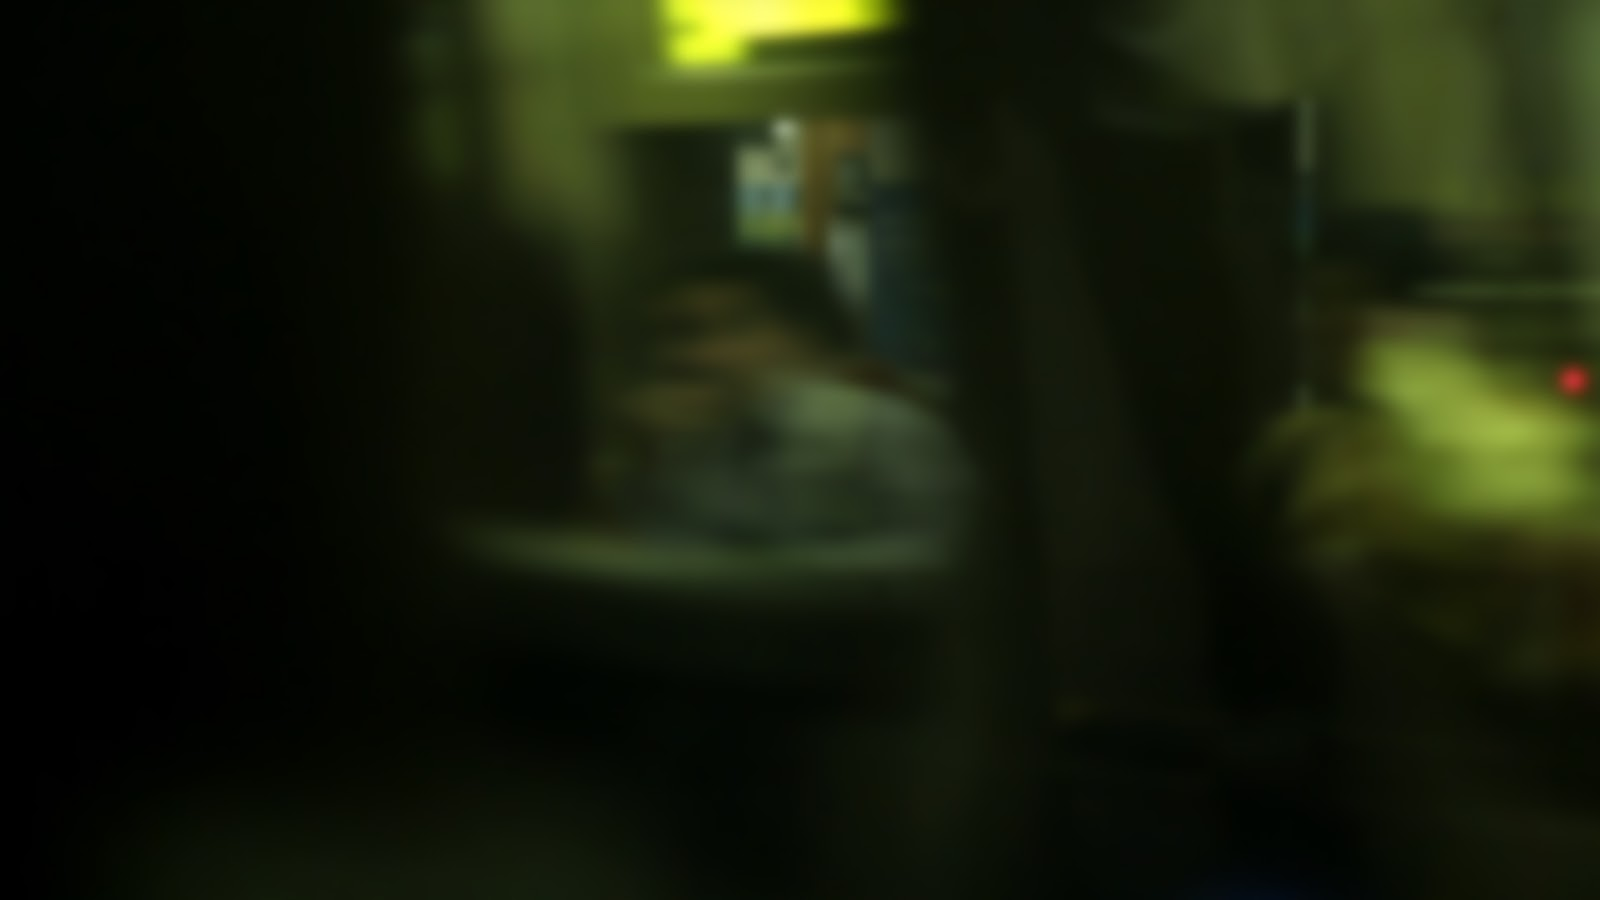 An out of focus (blurry) image of a subway car speeding by.  Focus is due to motion blur.